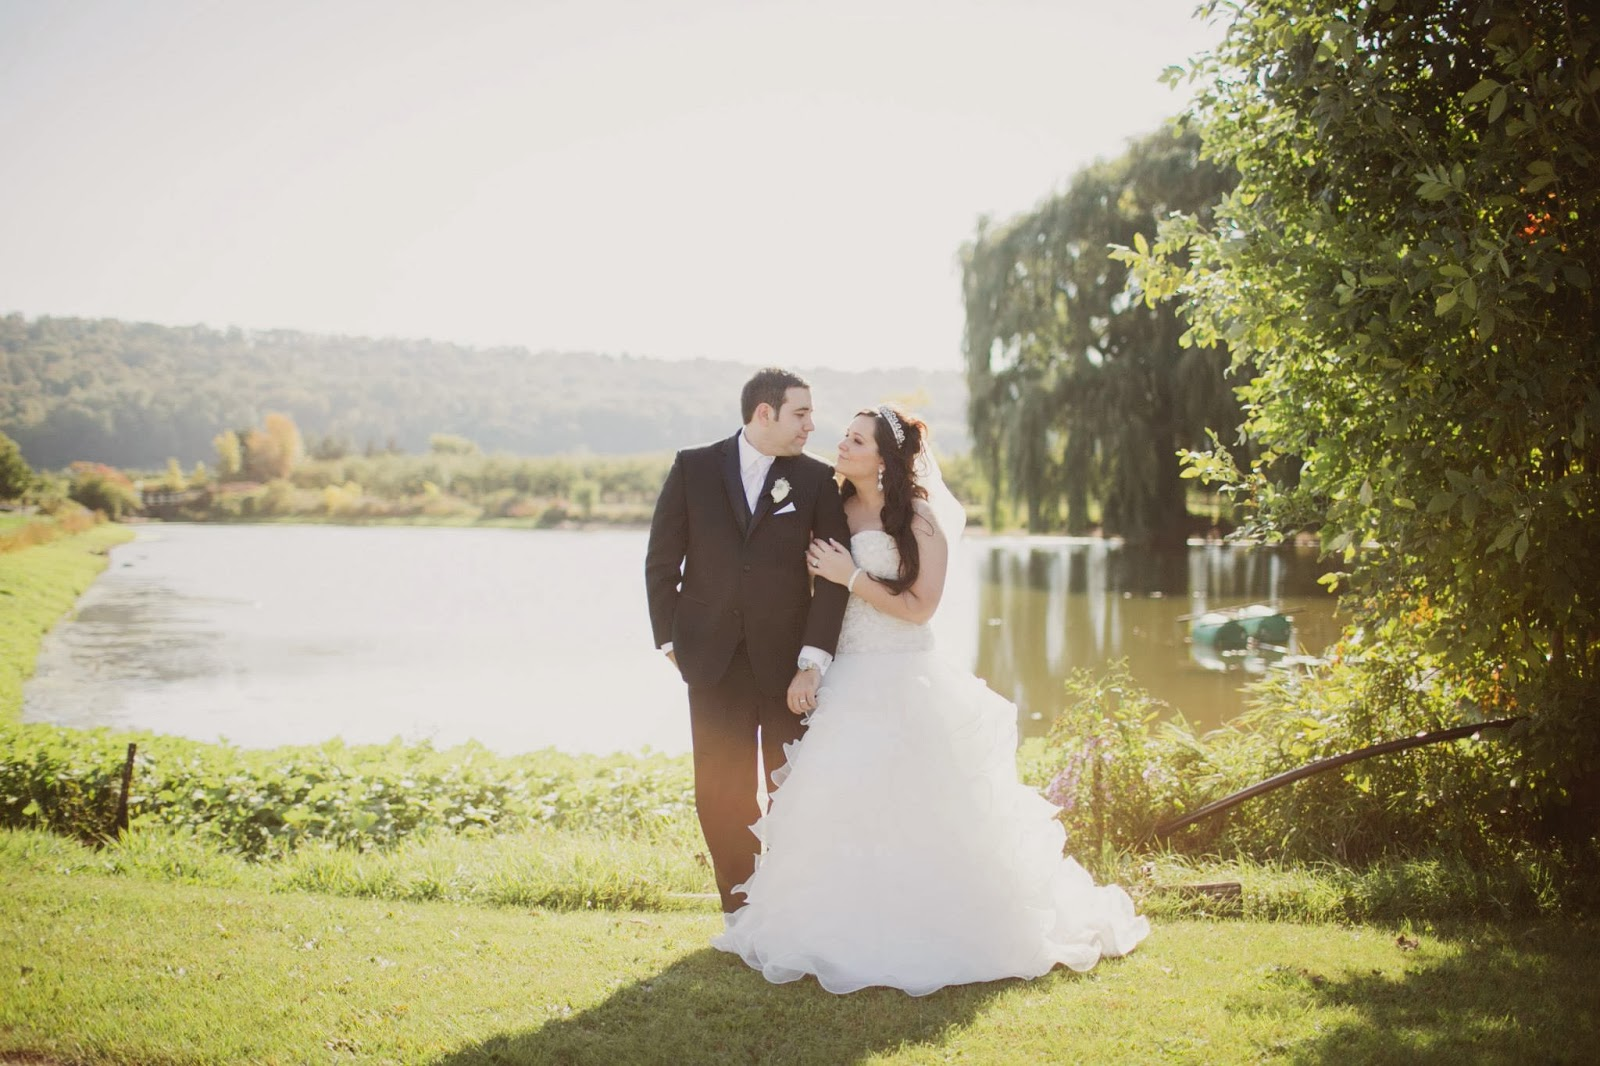 Puddicombe Estate Farms & Winery photos elizabeth in love, grimsby kj and co wedding planner ontario